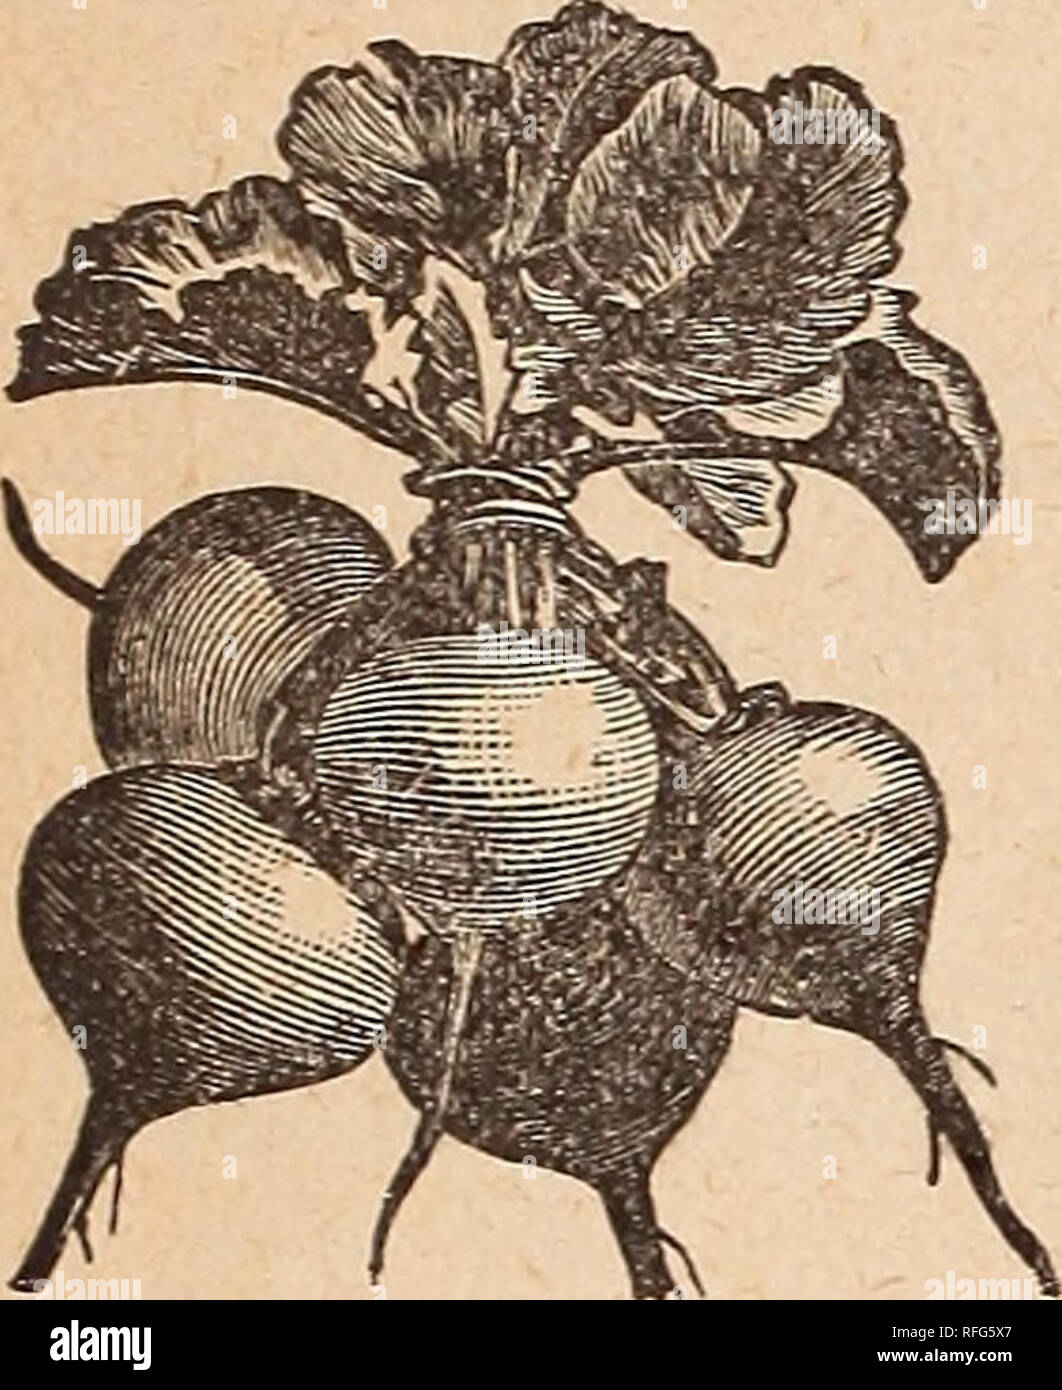 . Annual catalogue : tested and reliable garden, field and flower seeds. Nursery stock Ohio Cincinnati Catalogs; Vegetables Seeds Catalogs; Grasses Seeds Catalogs; Flowers Catalogs; Agricultural implements Catalogs. 10 J. CHAS. McCTJLLOUGH, Seedsman,. RADISH, Continued. Bri^hest l.ong' Scarlet—It is very early, maturing in 20 to 25 days, the flesh crisp and tender, excellent for home garden and partic- ularly desirable for the market, as it sells quickly because of its fine color and form. 10 cts. oz.; 20 cts. Jeave<l—Does not run to seed so readily as the other. 15 cls. % lb.; 45 cts. lb.  Stock Photo